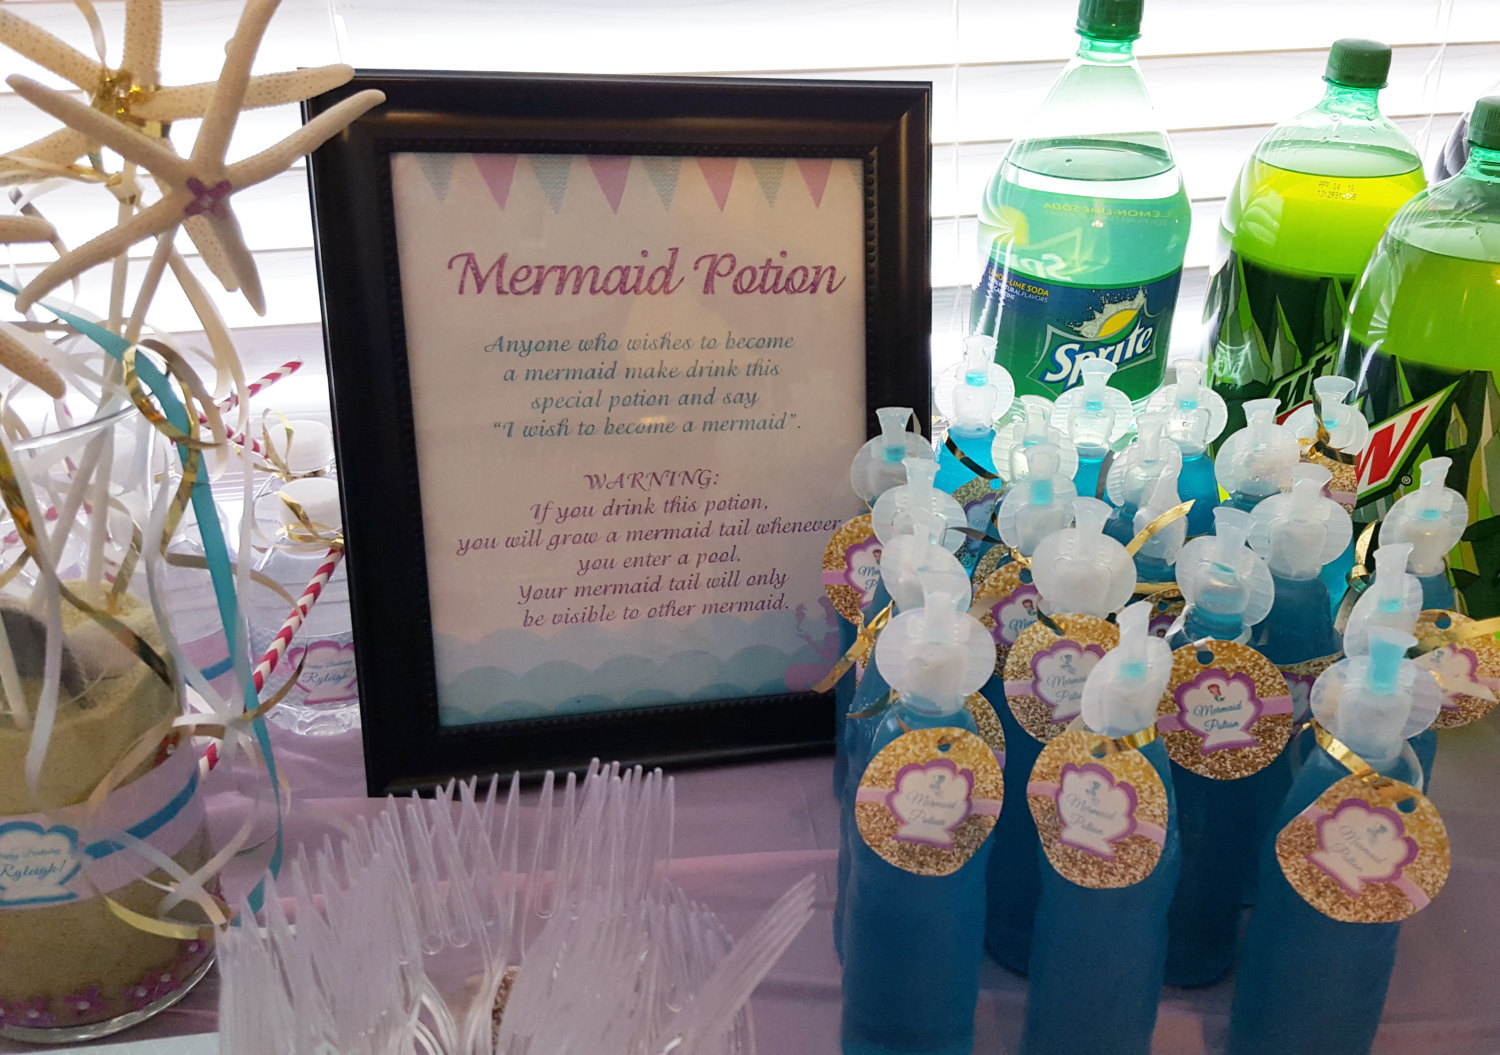 Mermaid potion sign and tags | Magical mermaid drinks and sign